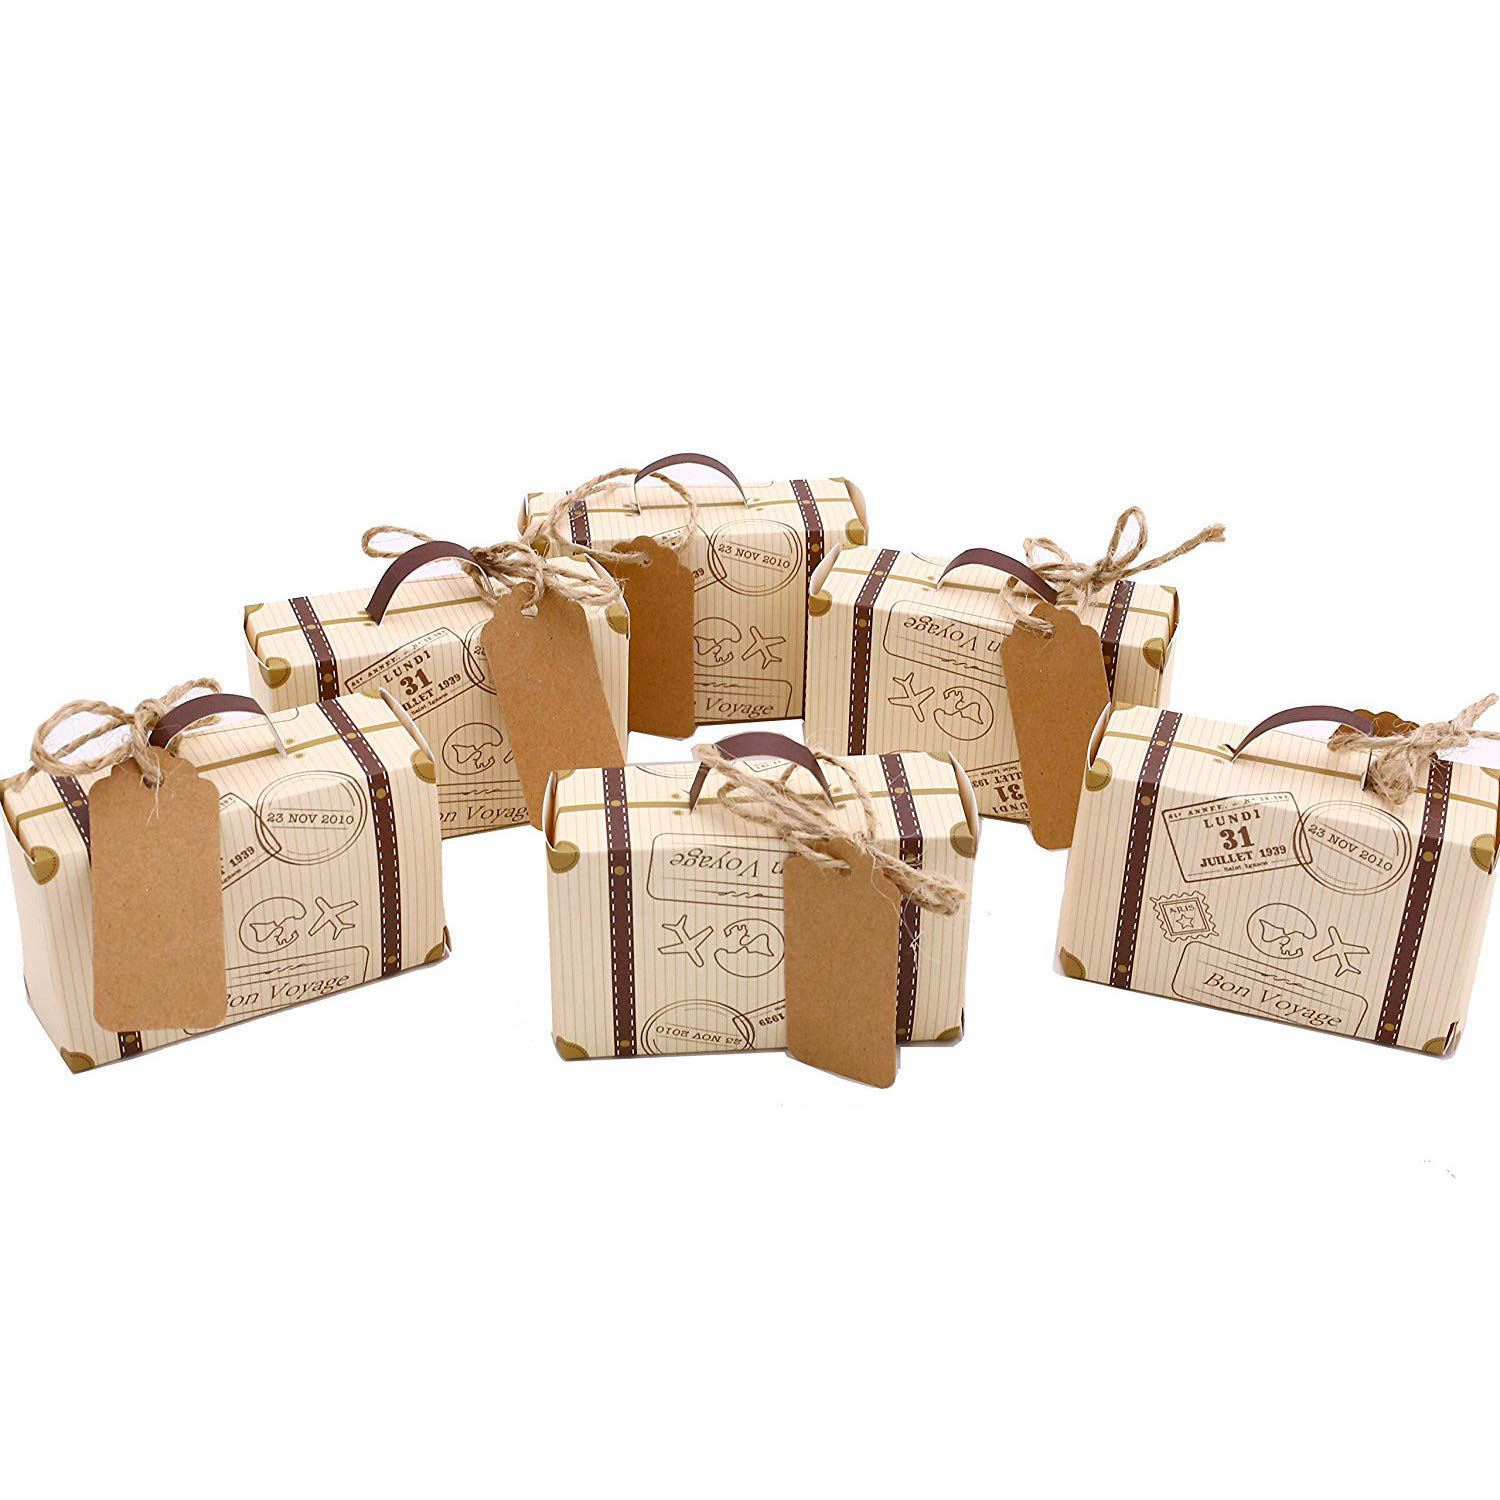 Hot 50pcs Mini Suitcase Favor Box Party Favor Candy Box, Vintage Kraft Paper With Tags And Rope For Wedding/Travel Themed Part